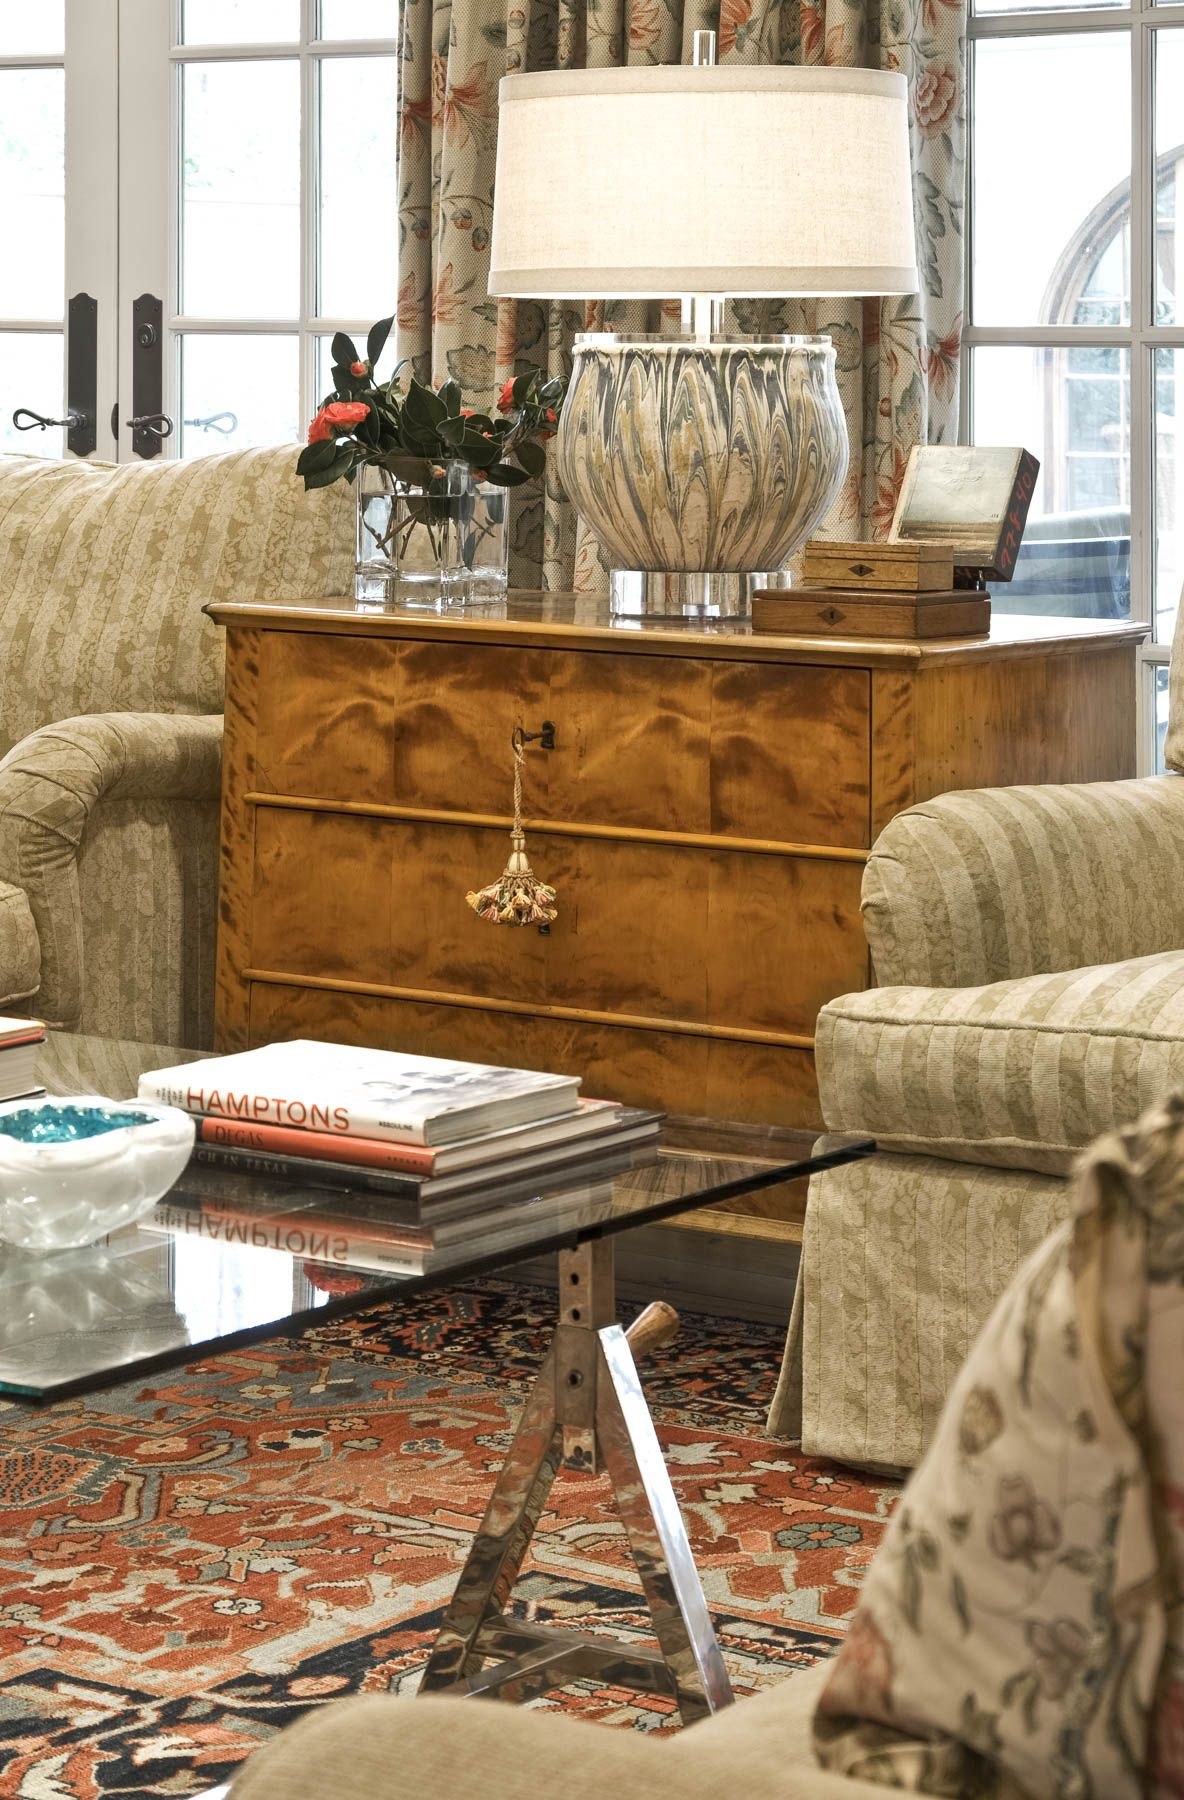 Rooms with rugs antique rug persian small settings  vignettes collins interiors also chest next to sofa